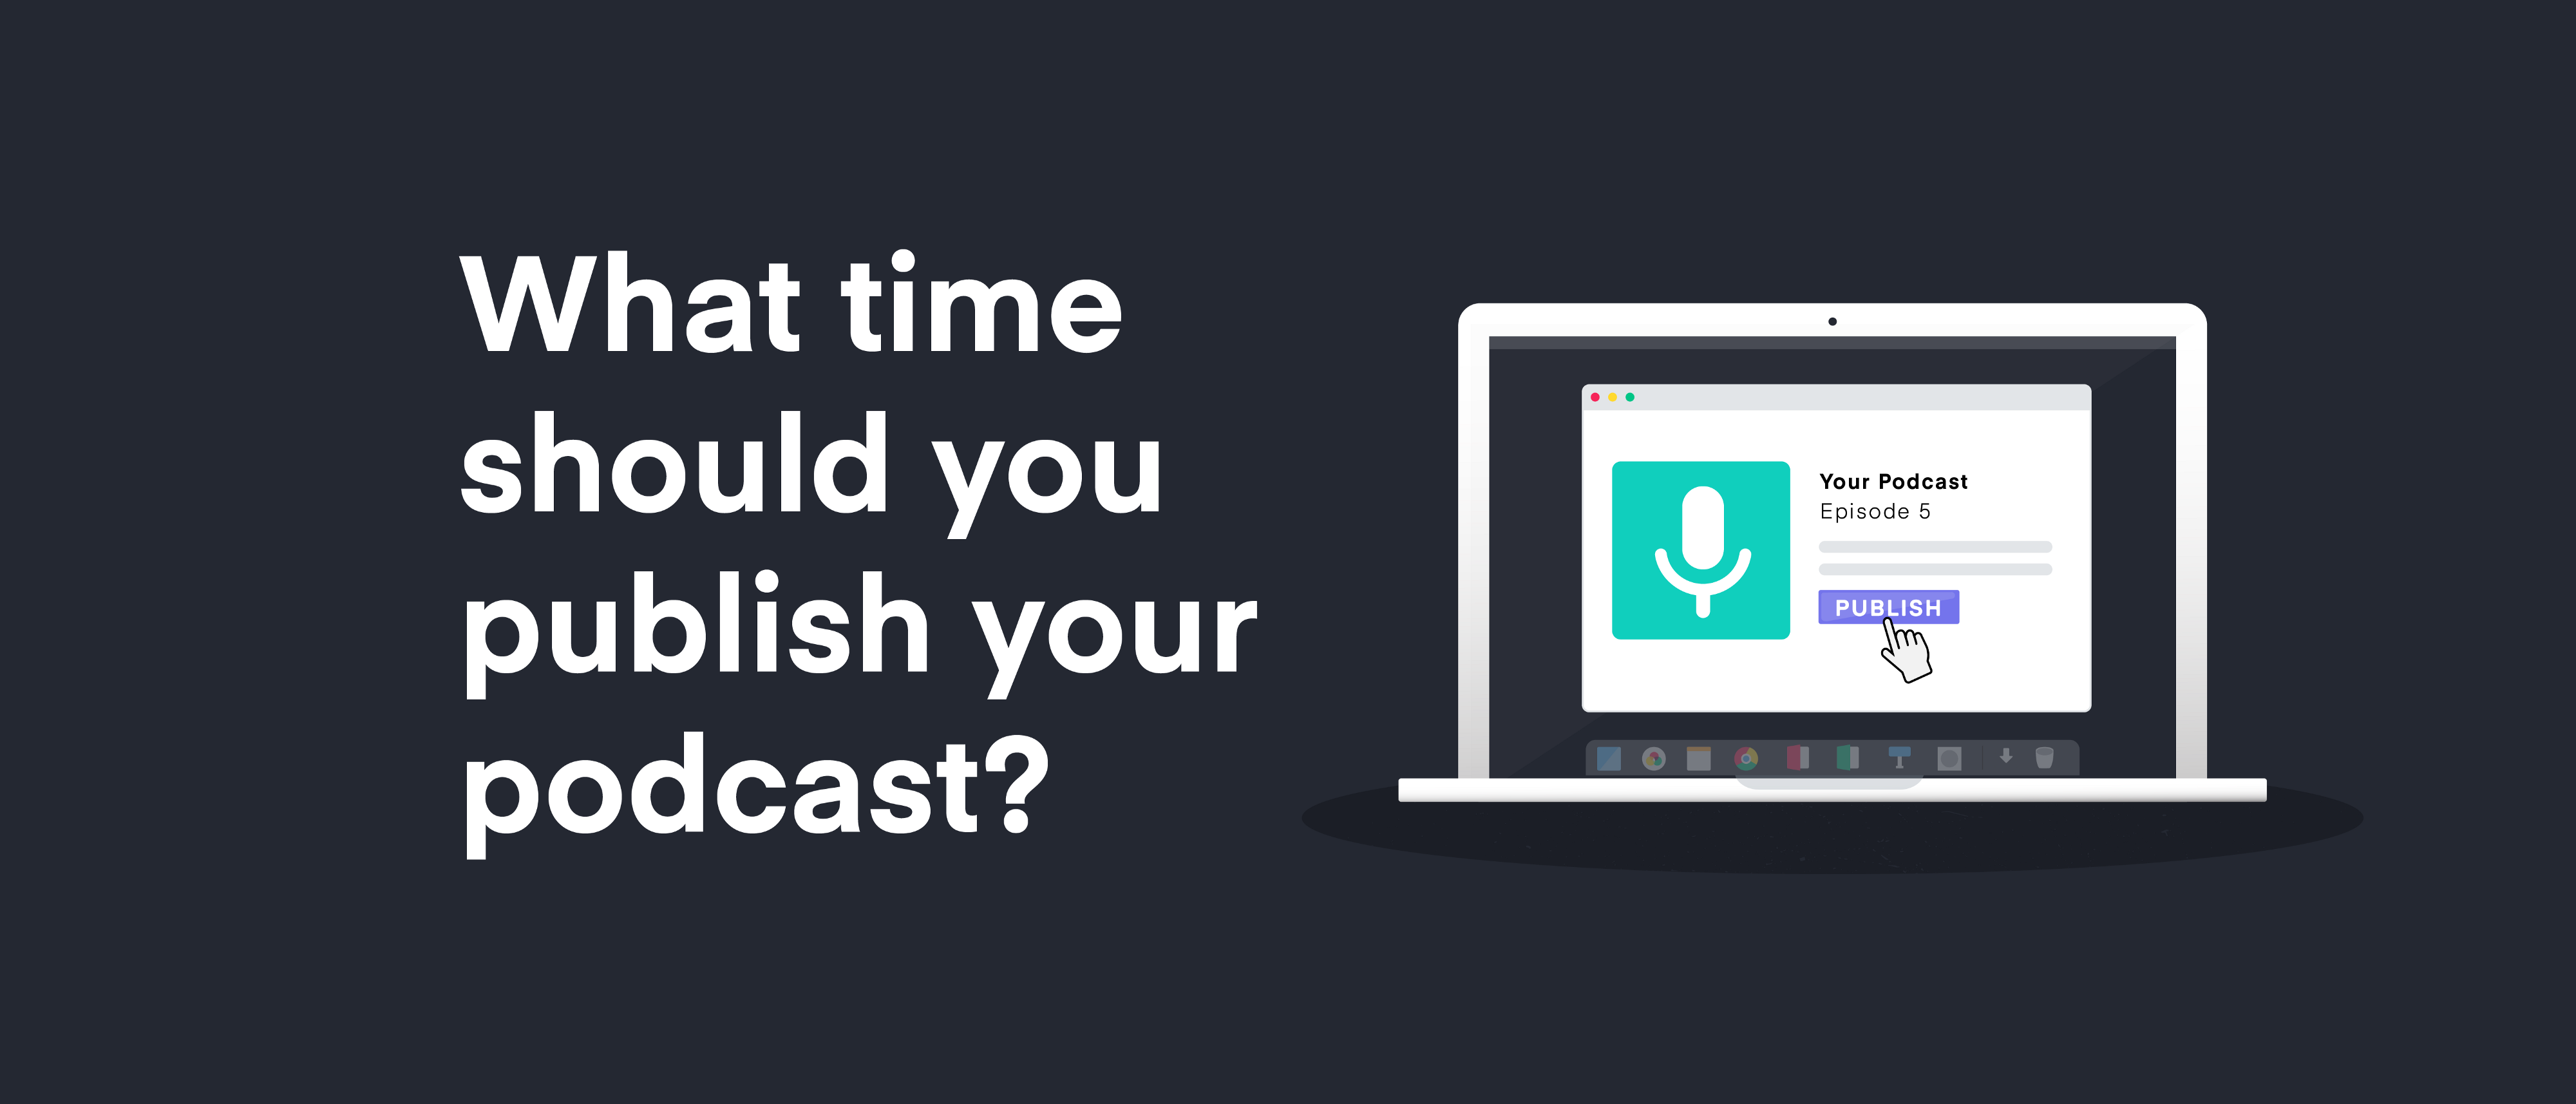 What time should you publish your podcast? - MegaphonePods